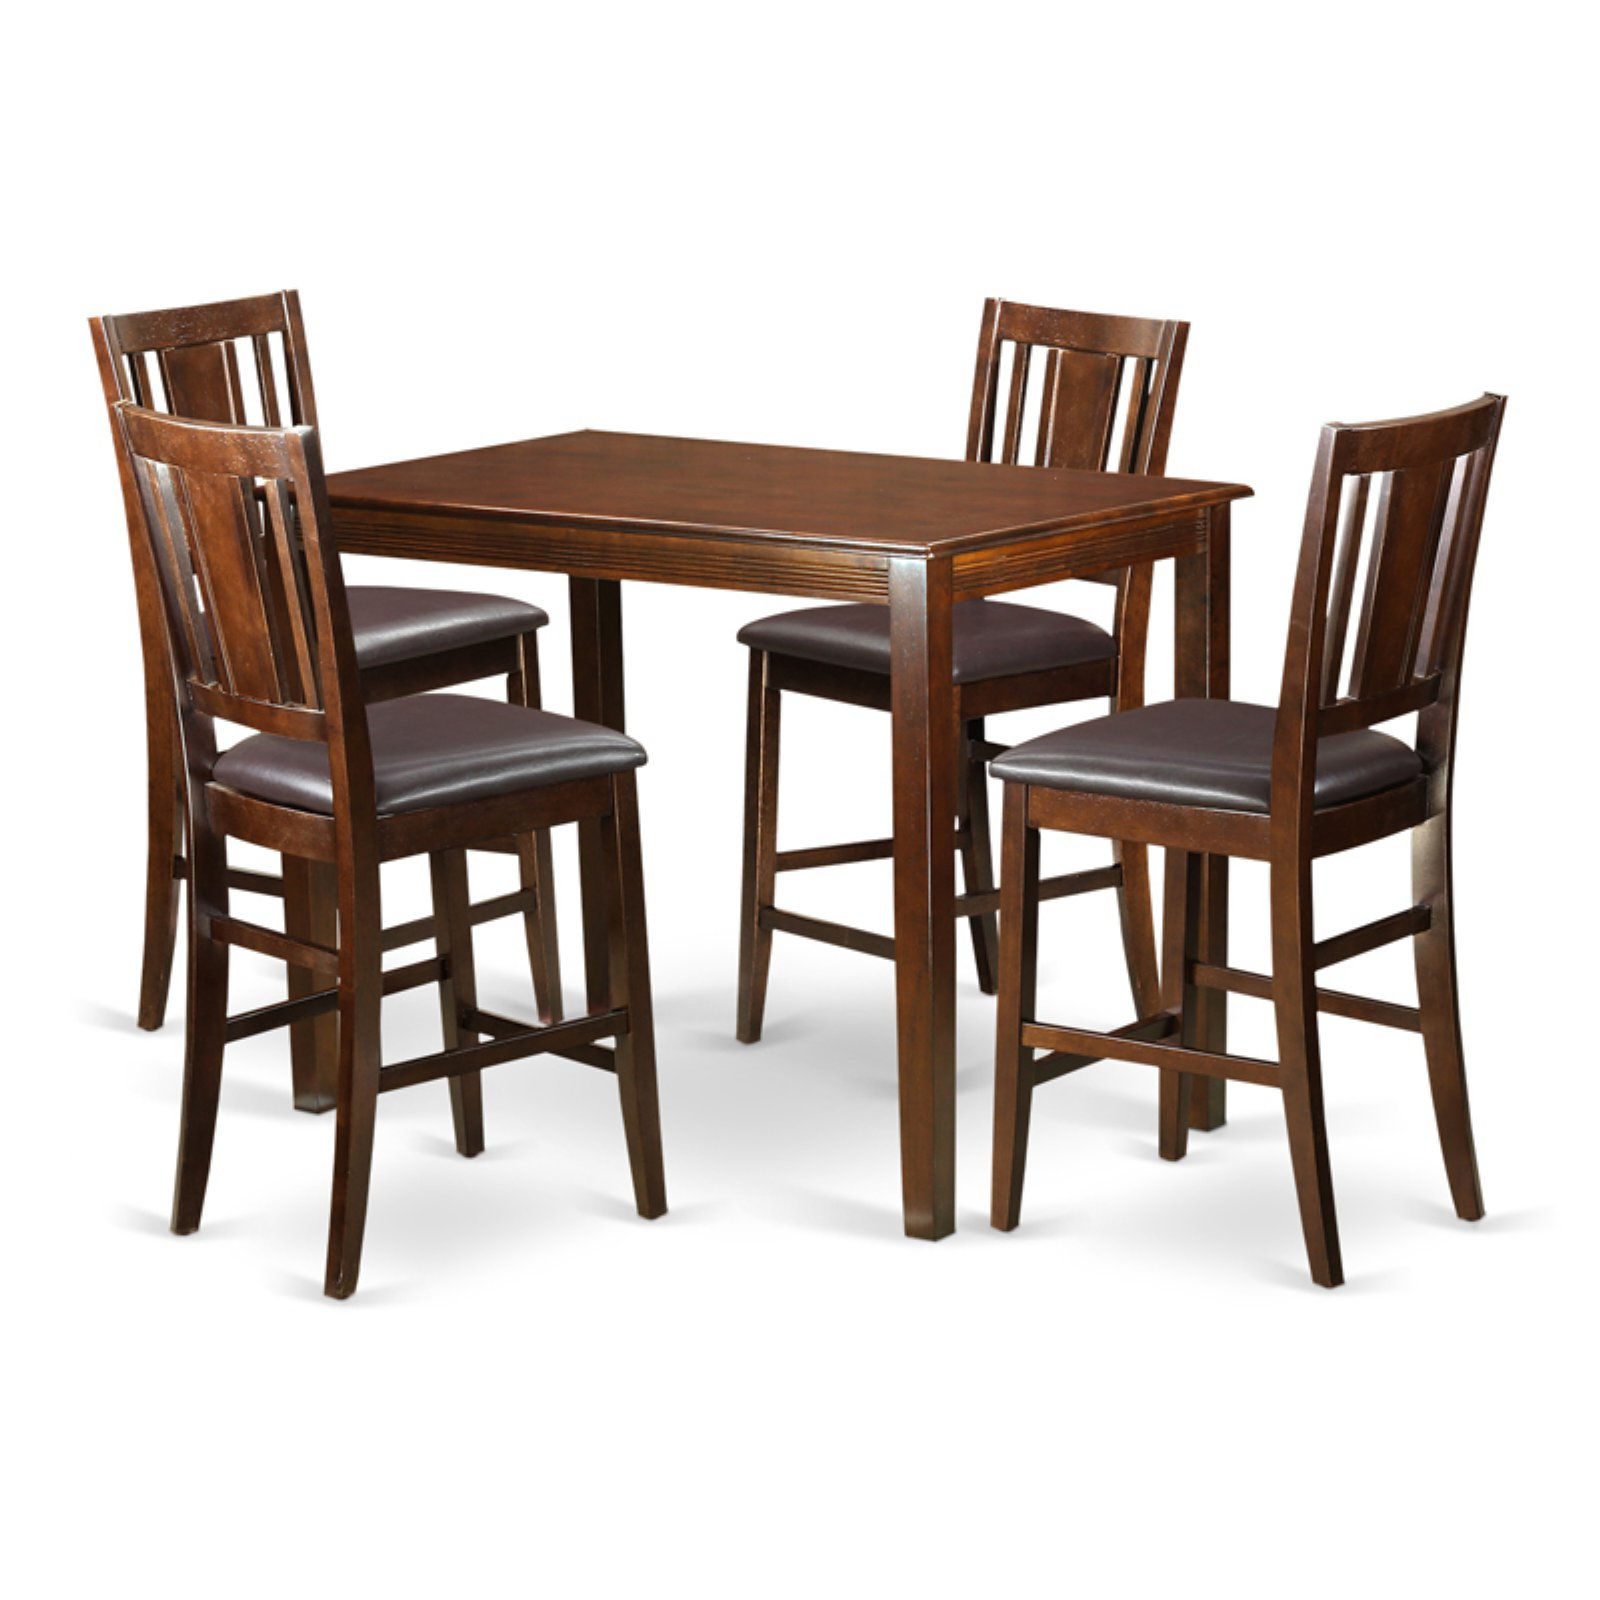 Sundberg 5 Piece Solid Wood Dining Sets Regarding Most Popular East West Furniture Yarmouth 5 Piece Scotch Art Dining Table Set (View 18 of 25)